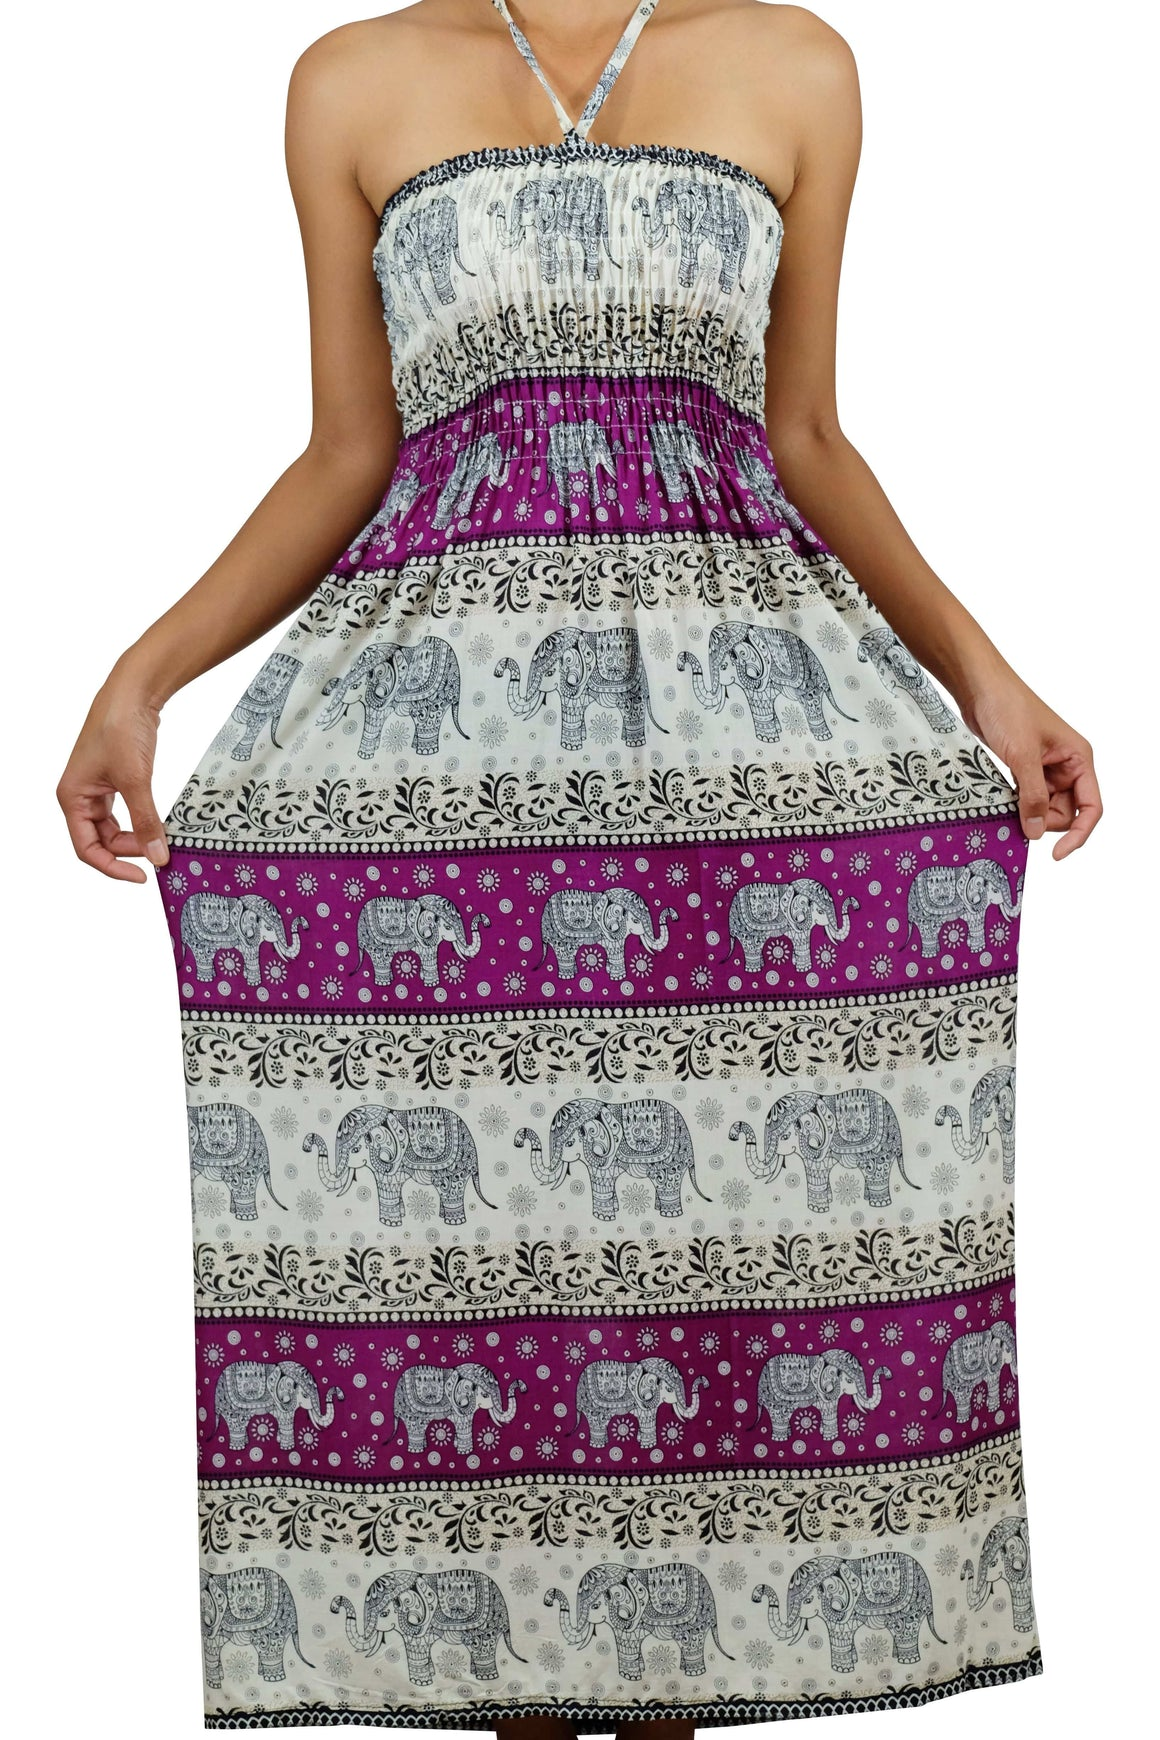 Elephant Shirt Store Dress Chang Phun Halter Elephant Dress White and Purple